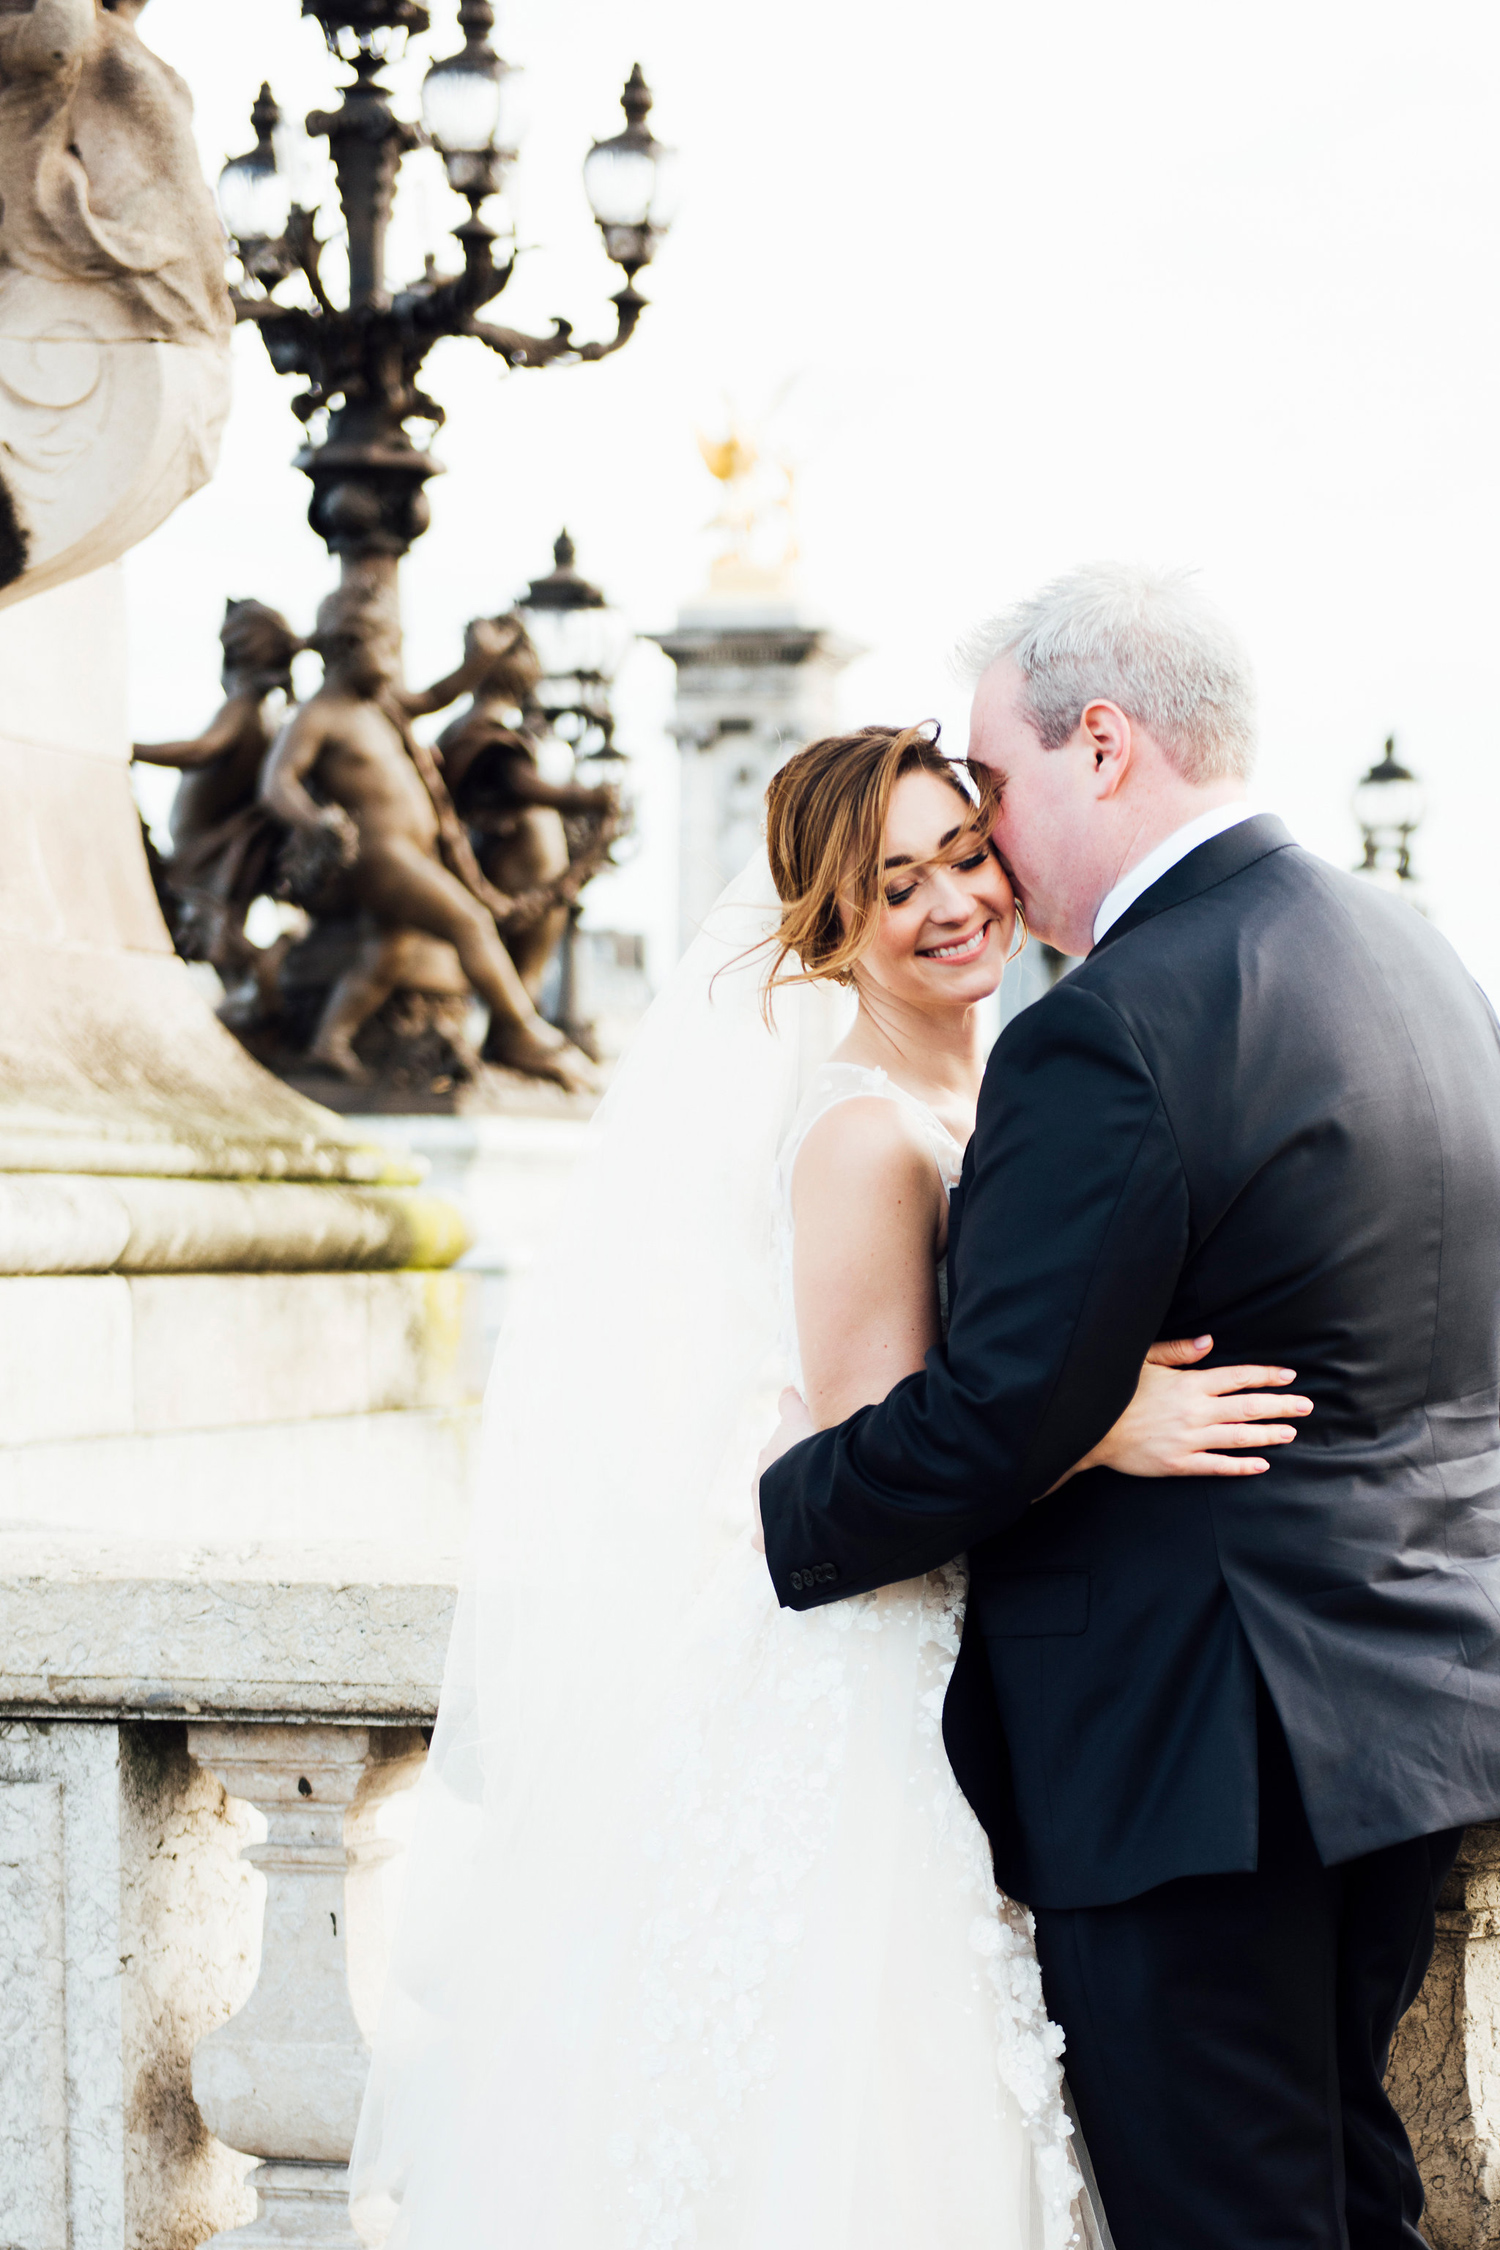 148-katie-mitchell-paris-europe-destination-elopement-wedding-photographer-france.jpg